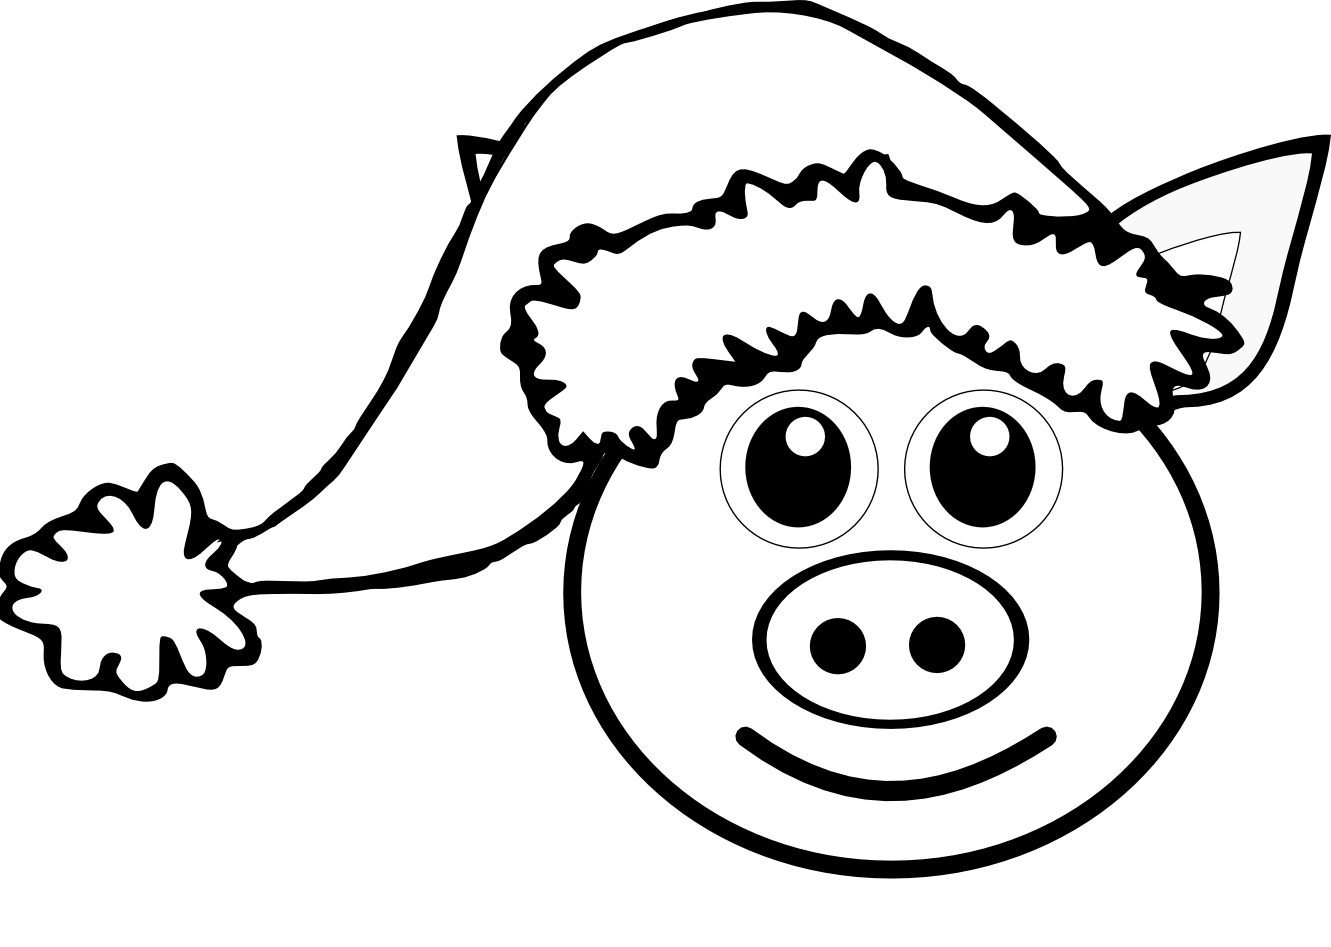 royalty free download Pig Face Drawing at GetDrawings